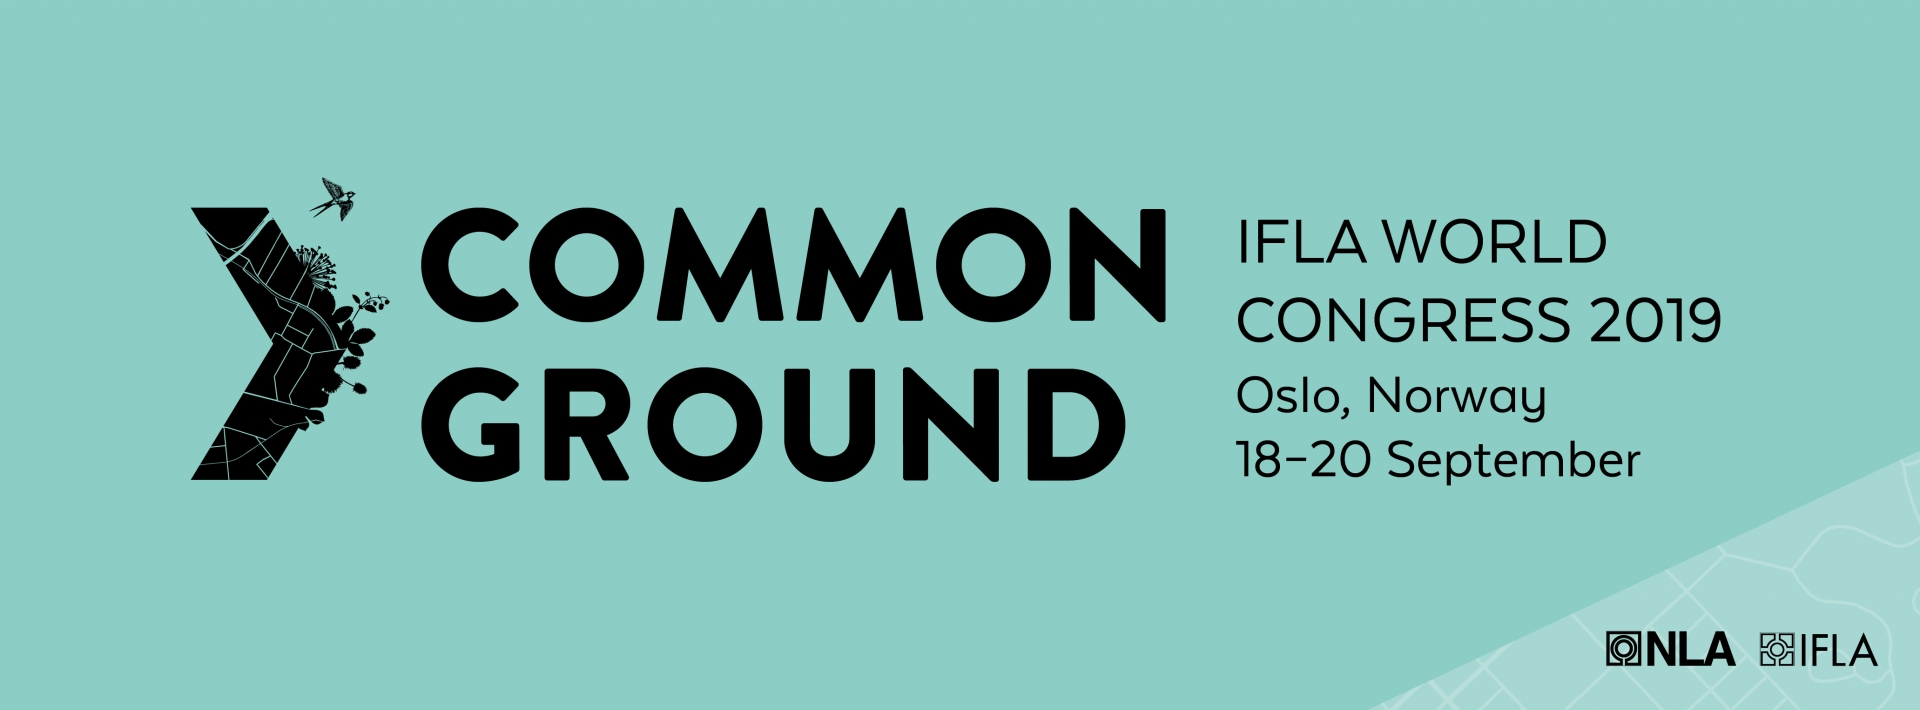 Common Ground: IFLA World Congress 2019